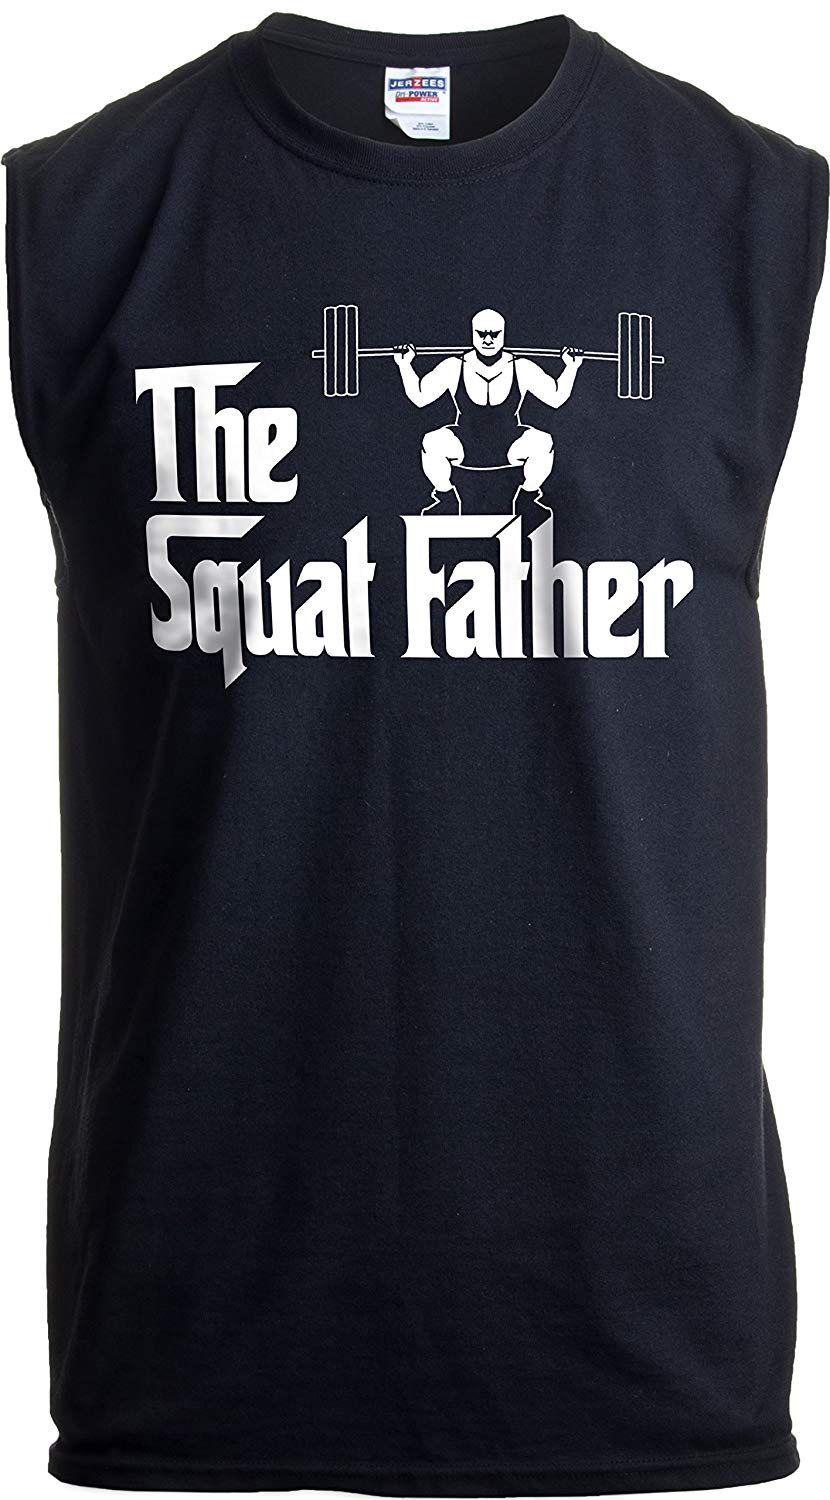 The Squatfather funny workout tank top